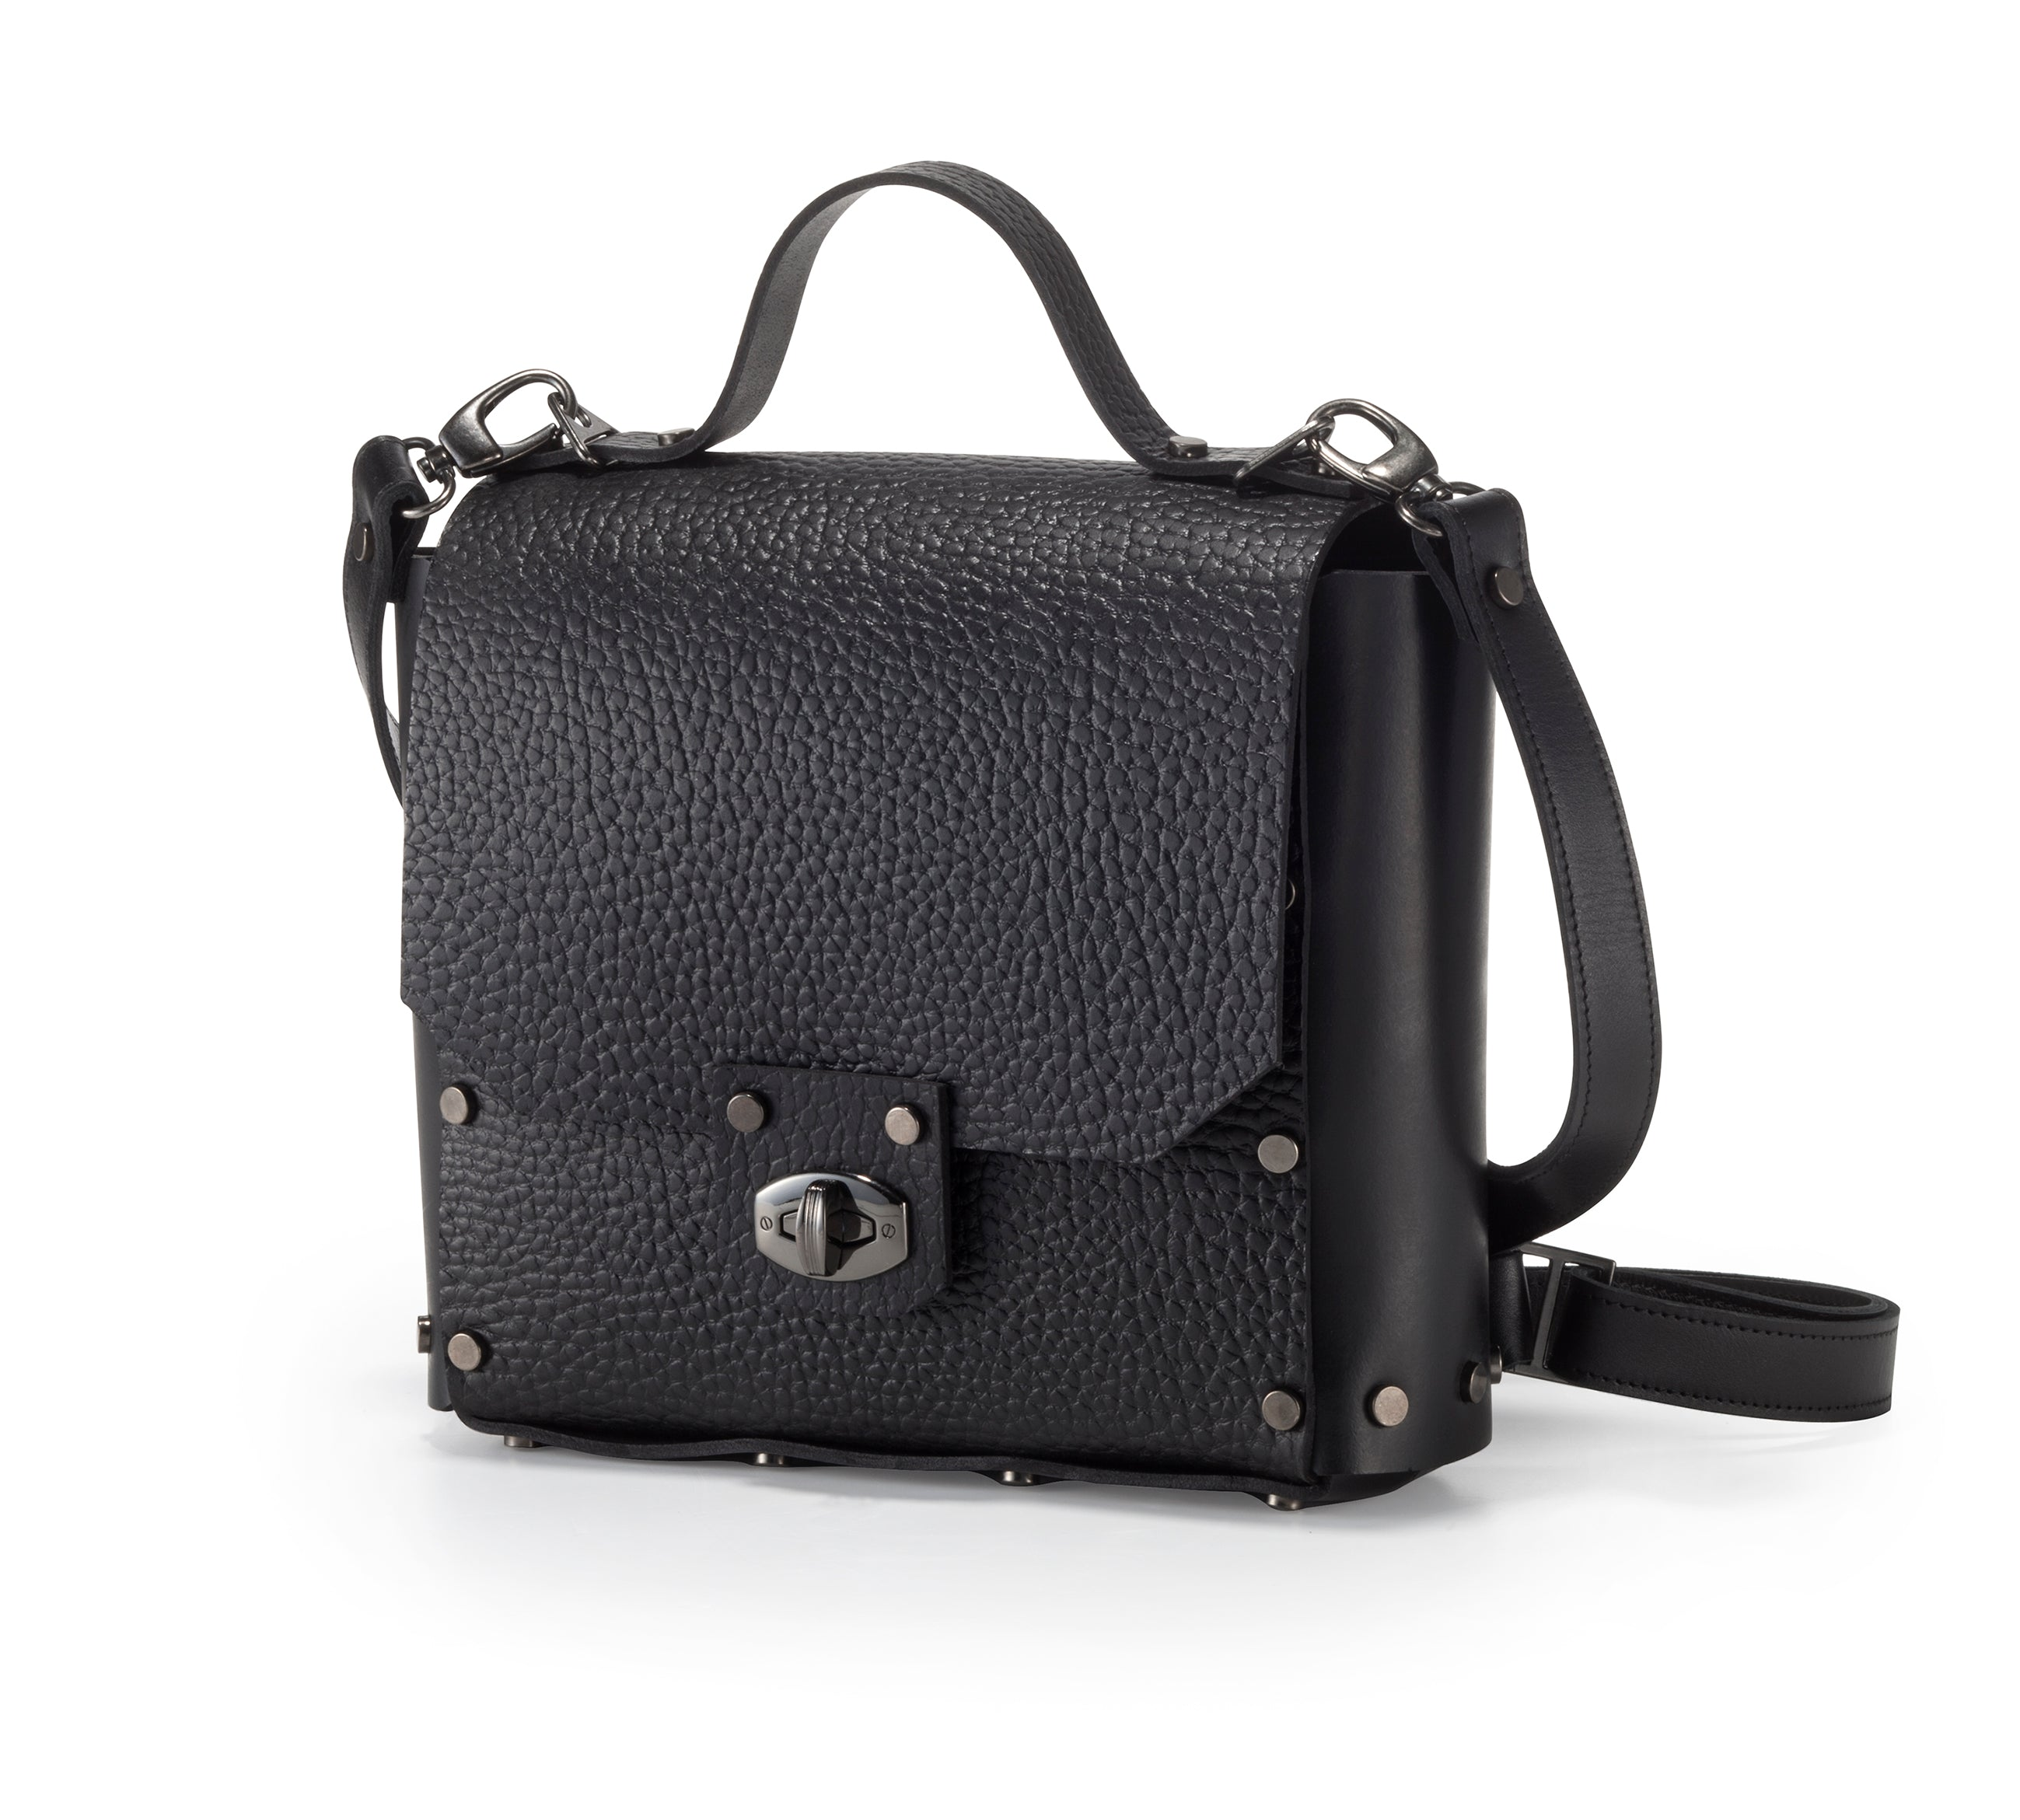 Rivet backpack texture leather - Collecte.studio